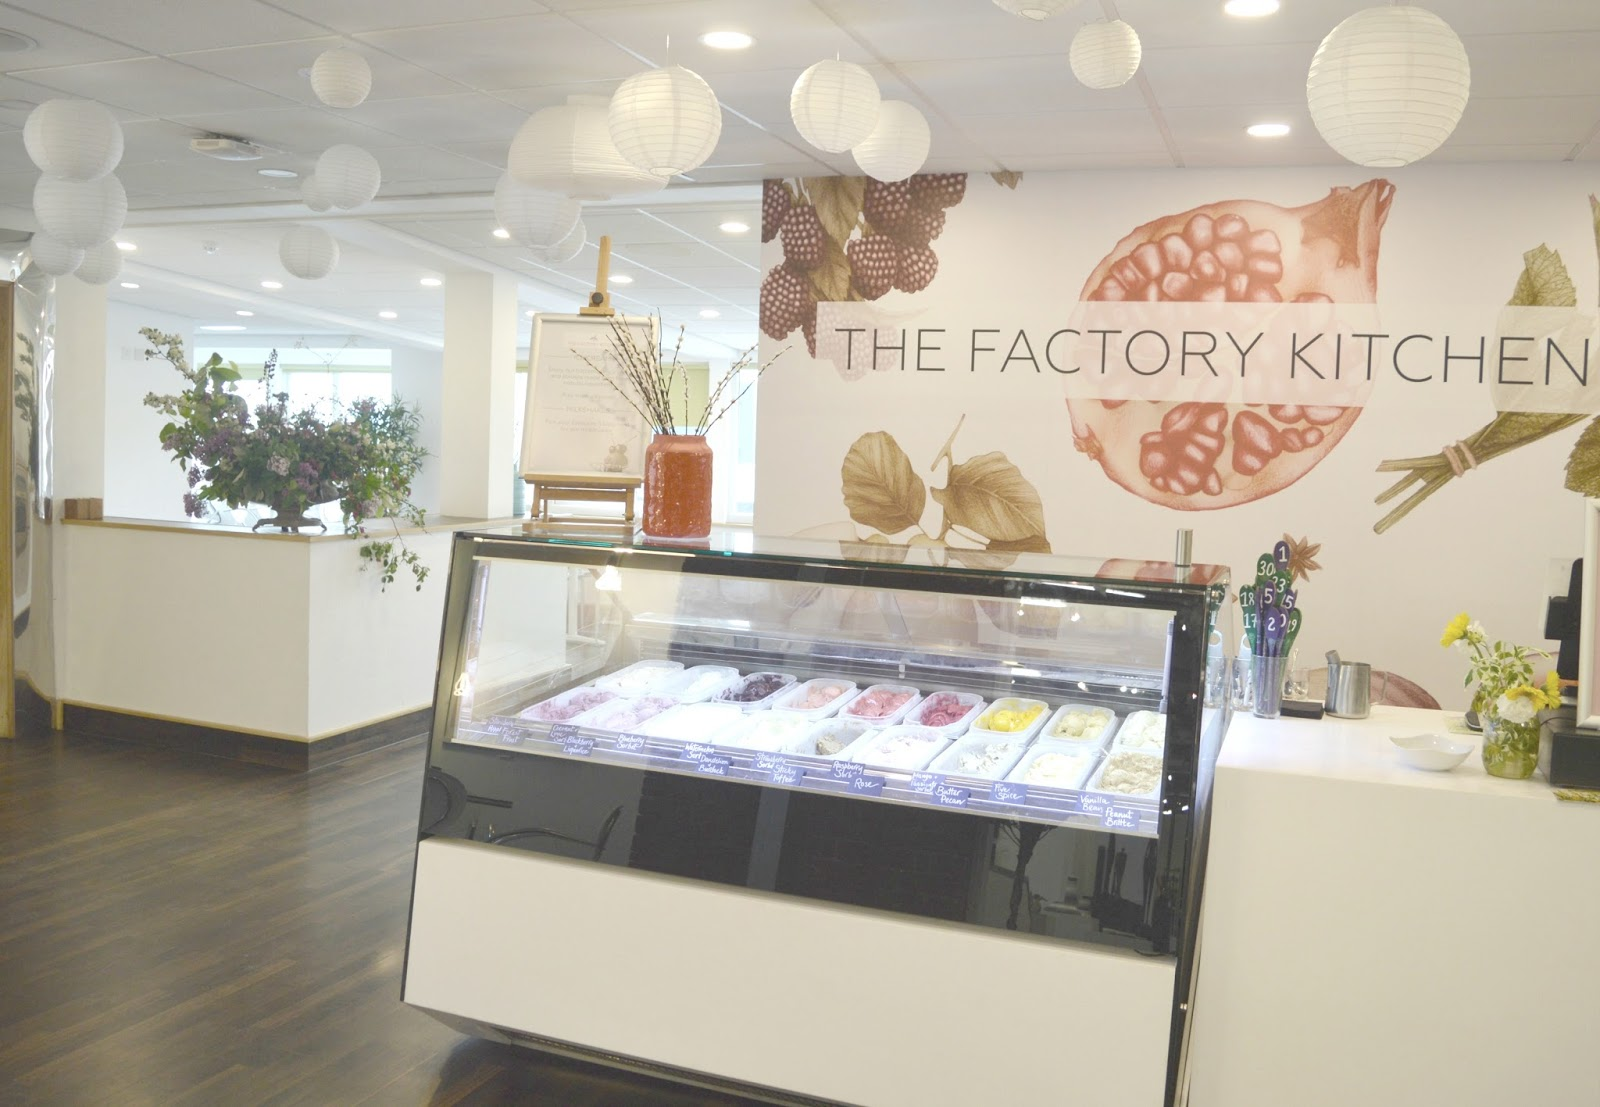 Hidden Inside The Biscuit Factory Art Gallery, The Factory Kitchen Serves  Up Fresh Food Throughout The Day And I Guarantee That Once Youu0027ve Visited  Youu0027ll ...